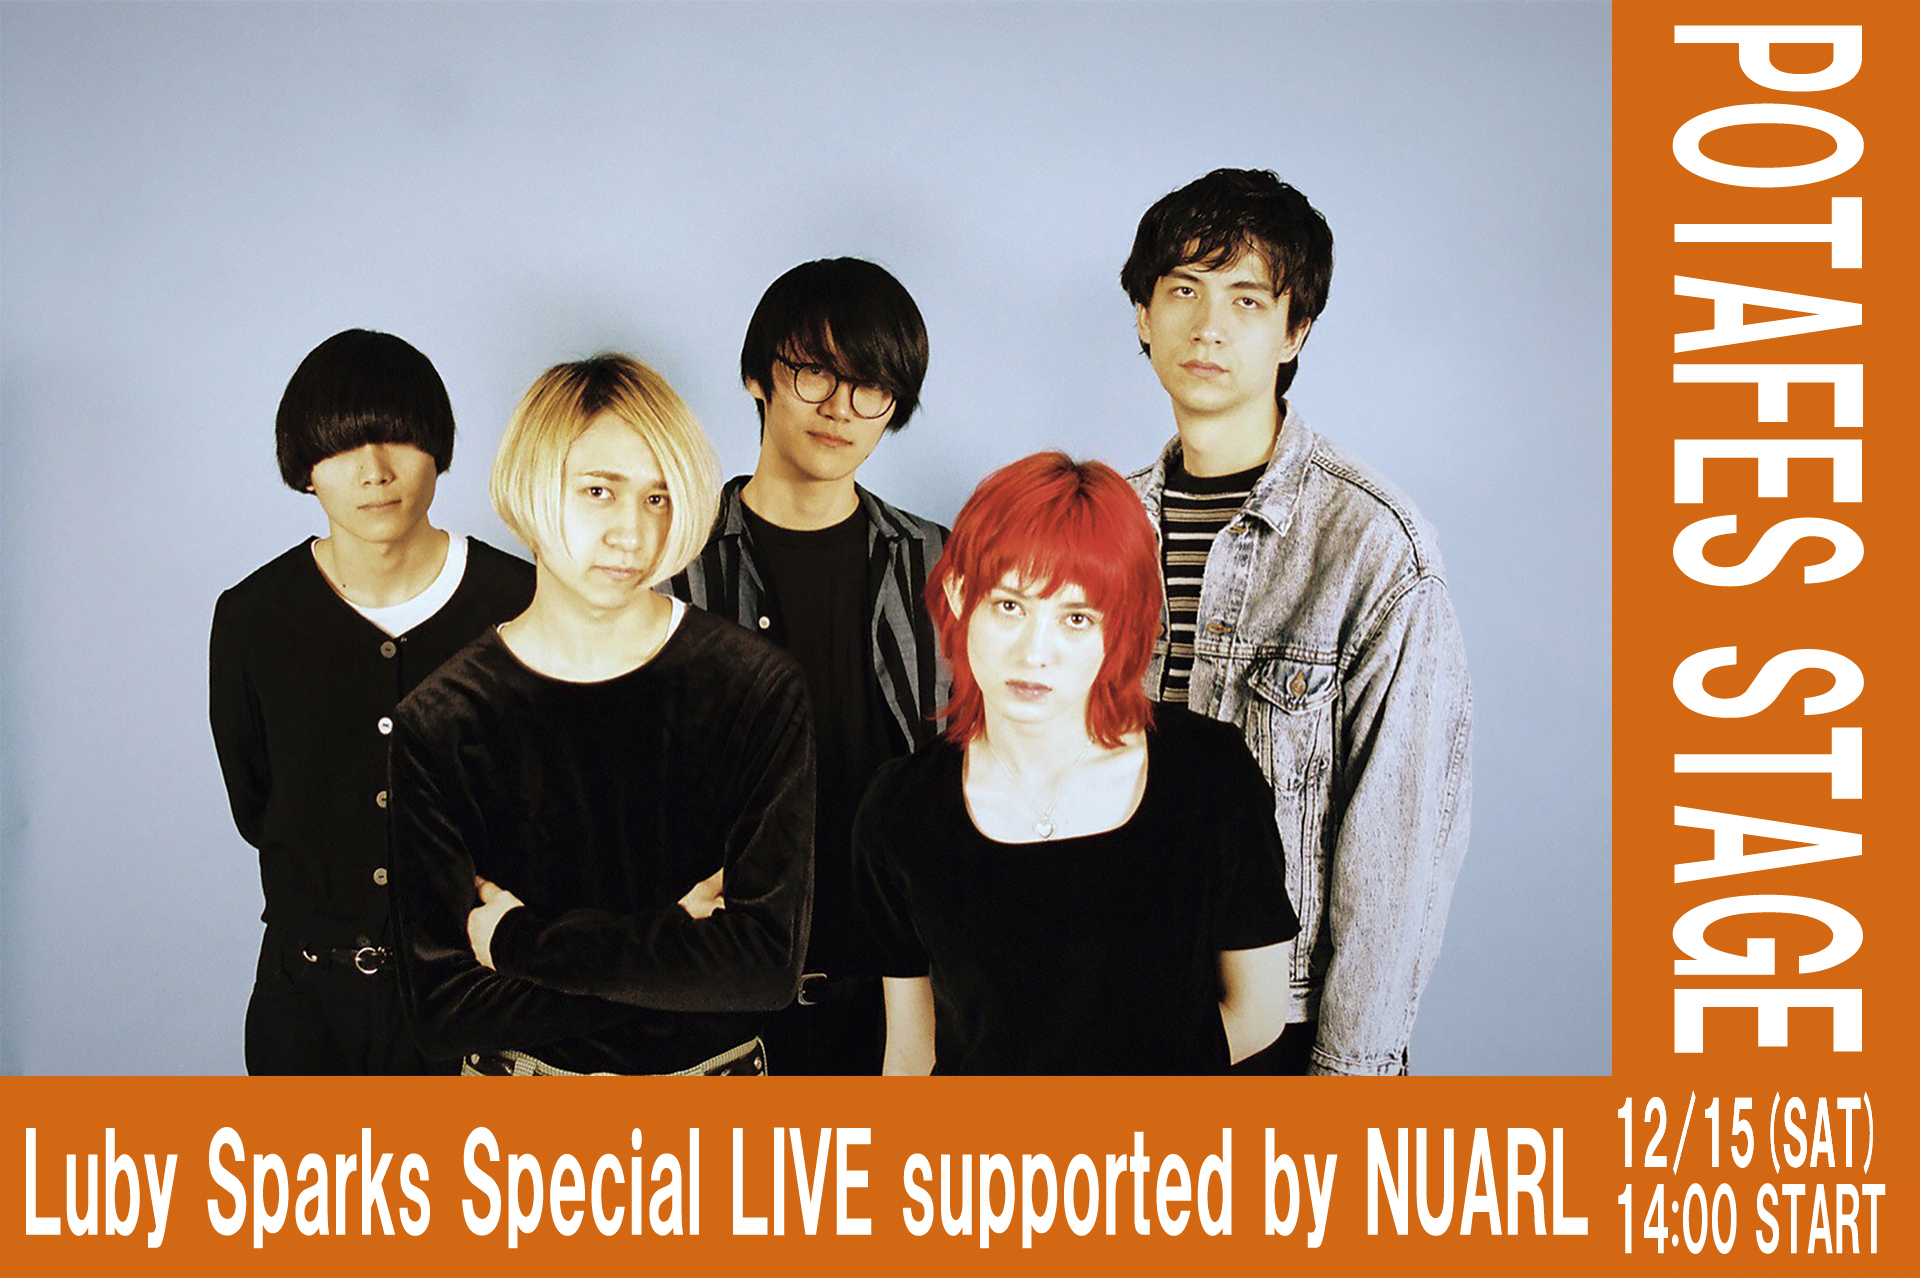 【ステージ情報】Luby Sparks Special LIVE supported by NUARL